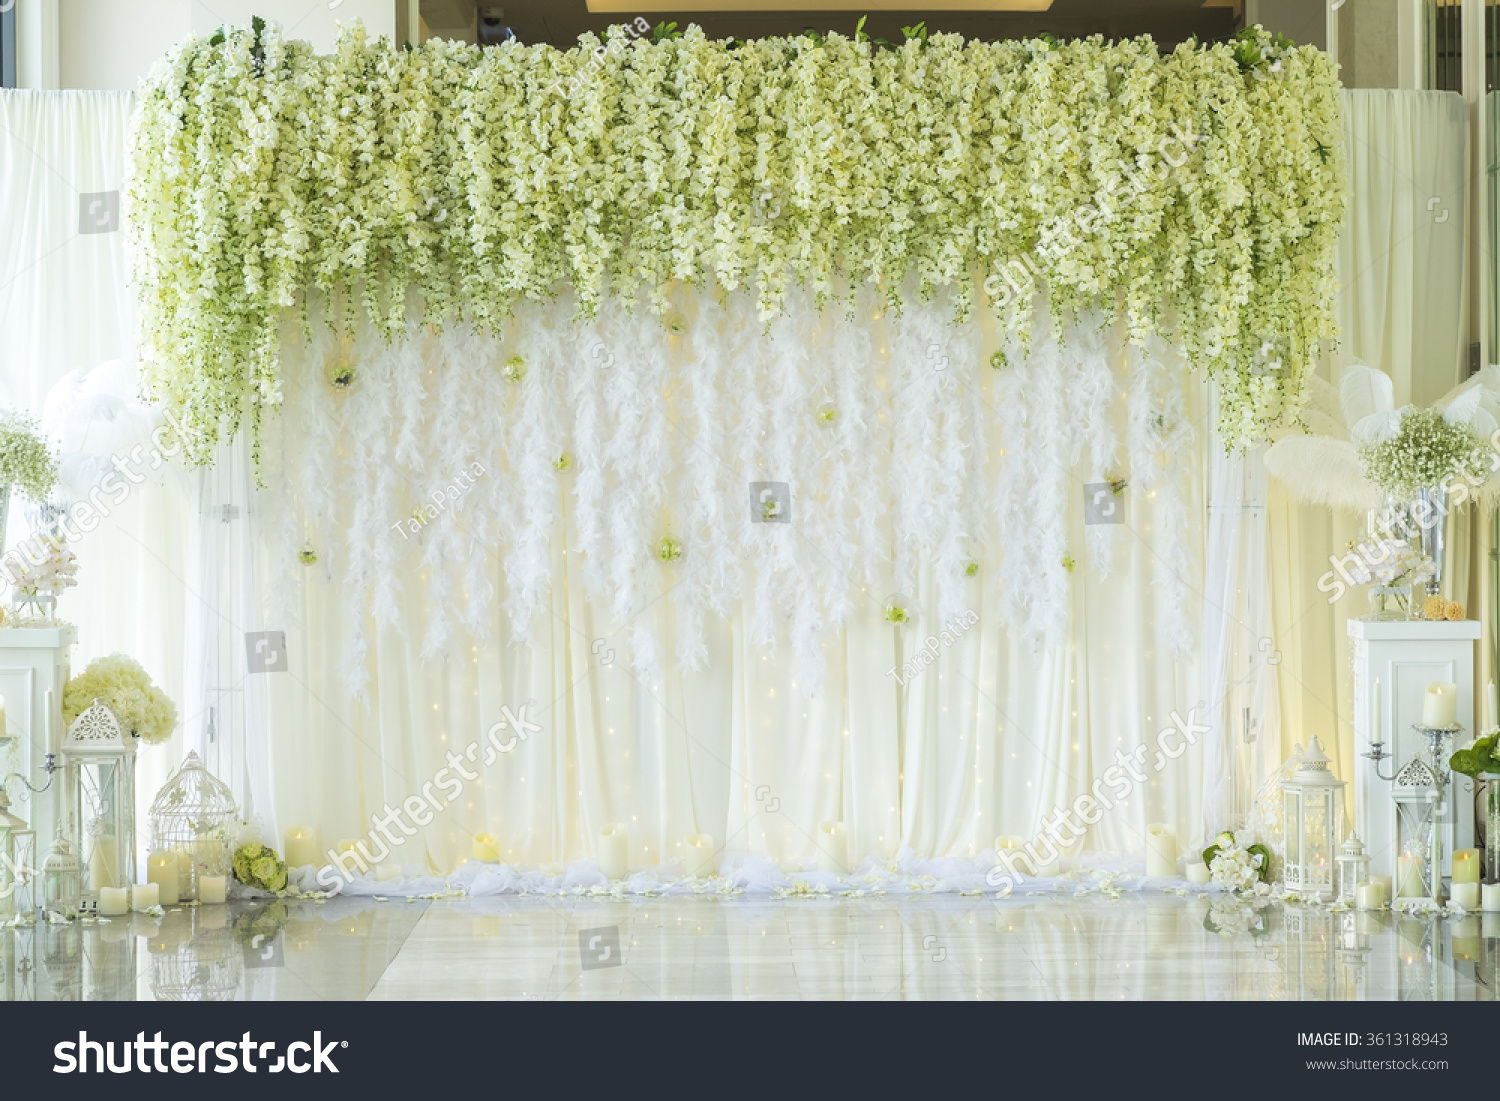 how to become a wedding decorator royalty free wedding backdrop with flower decoration 4896